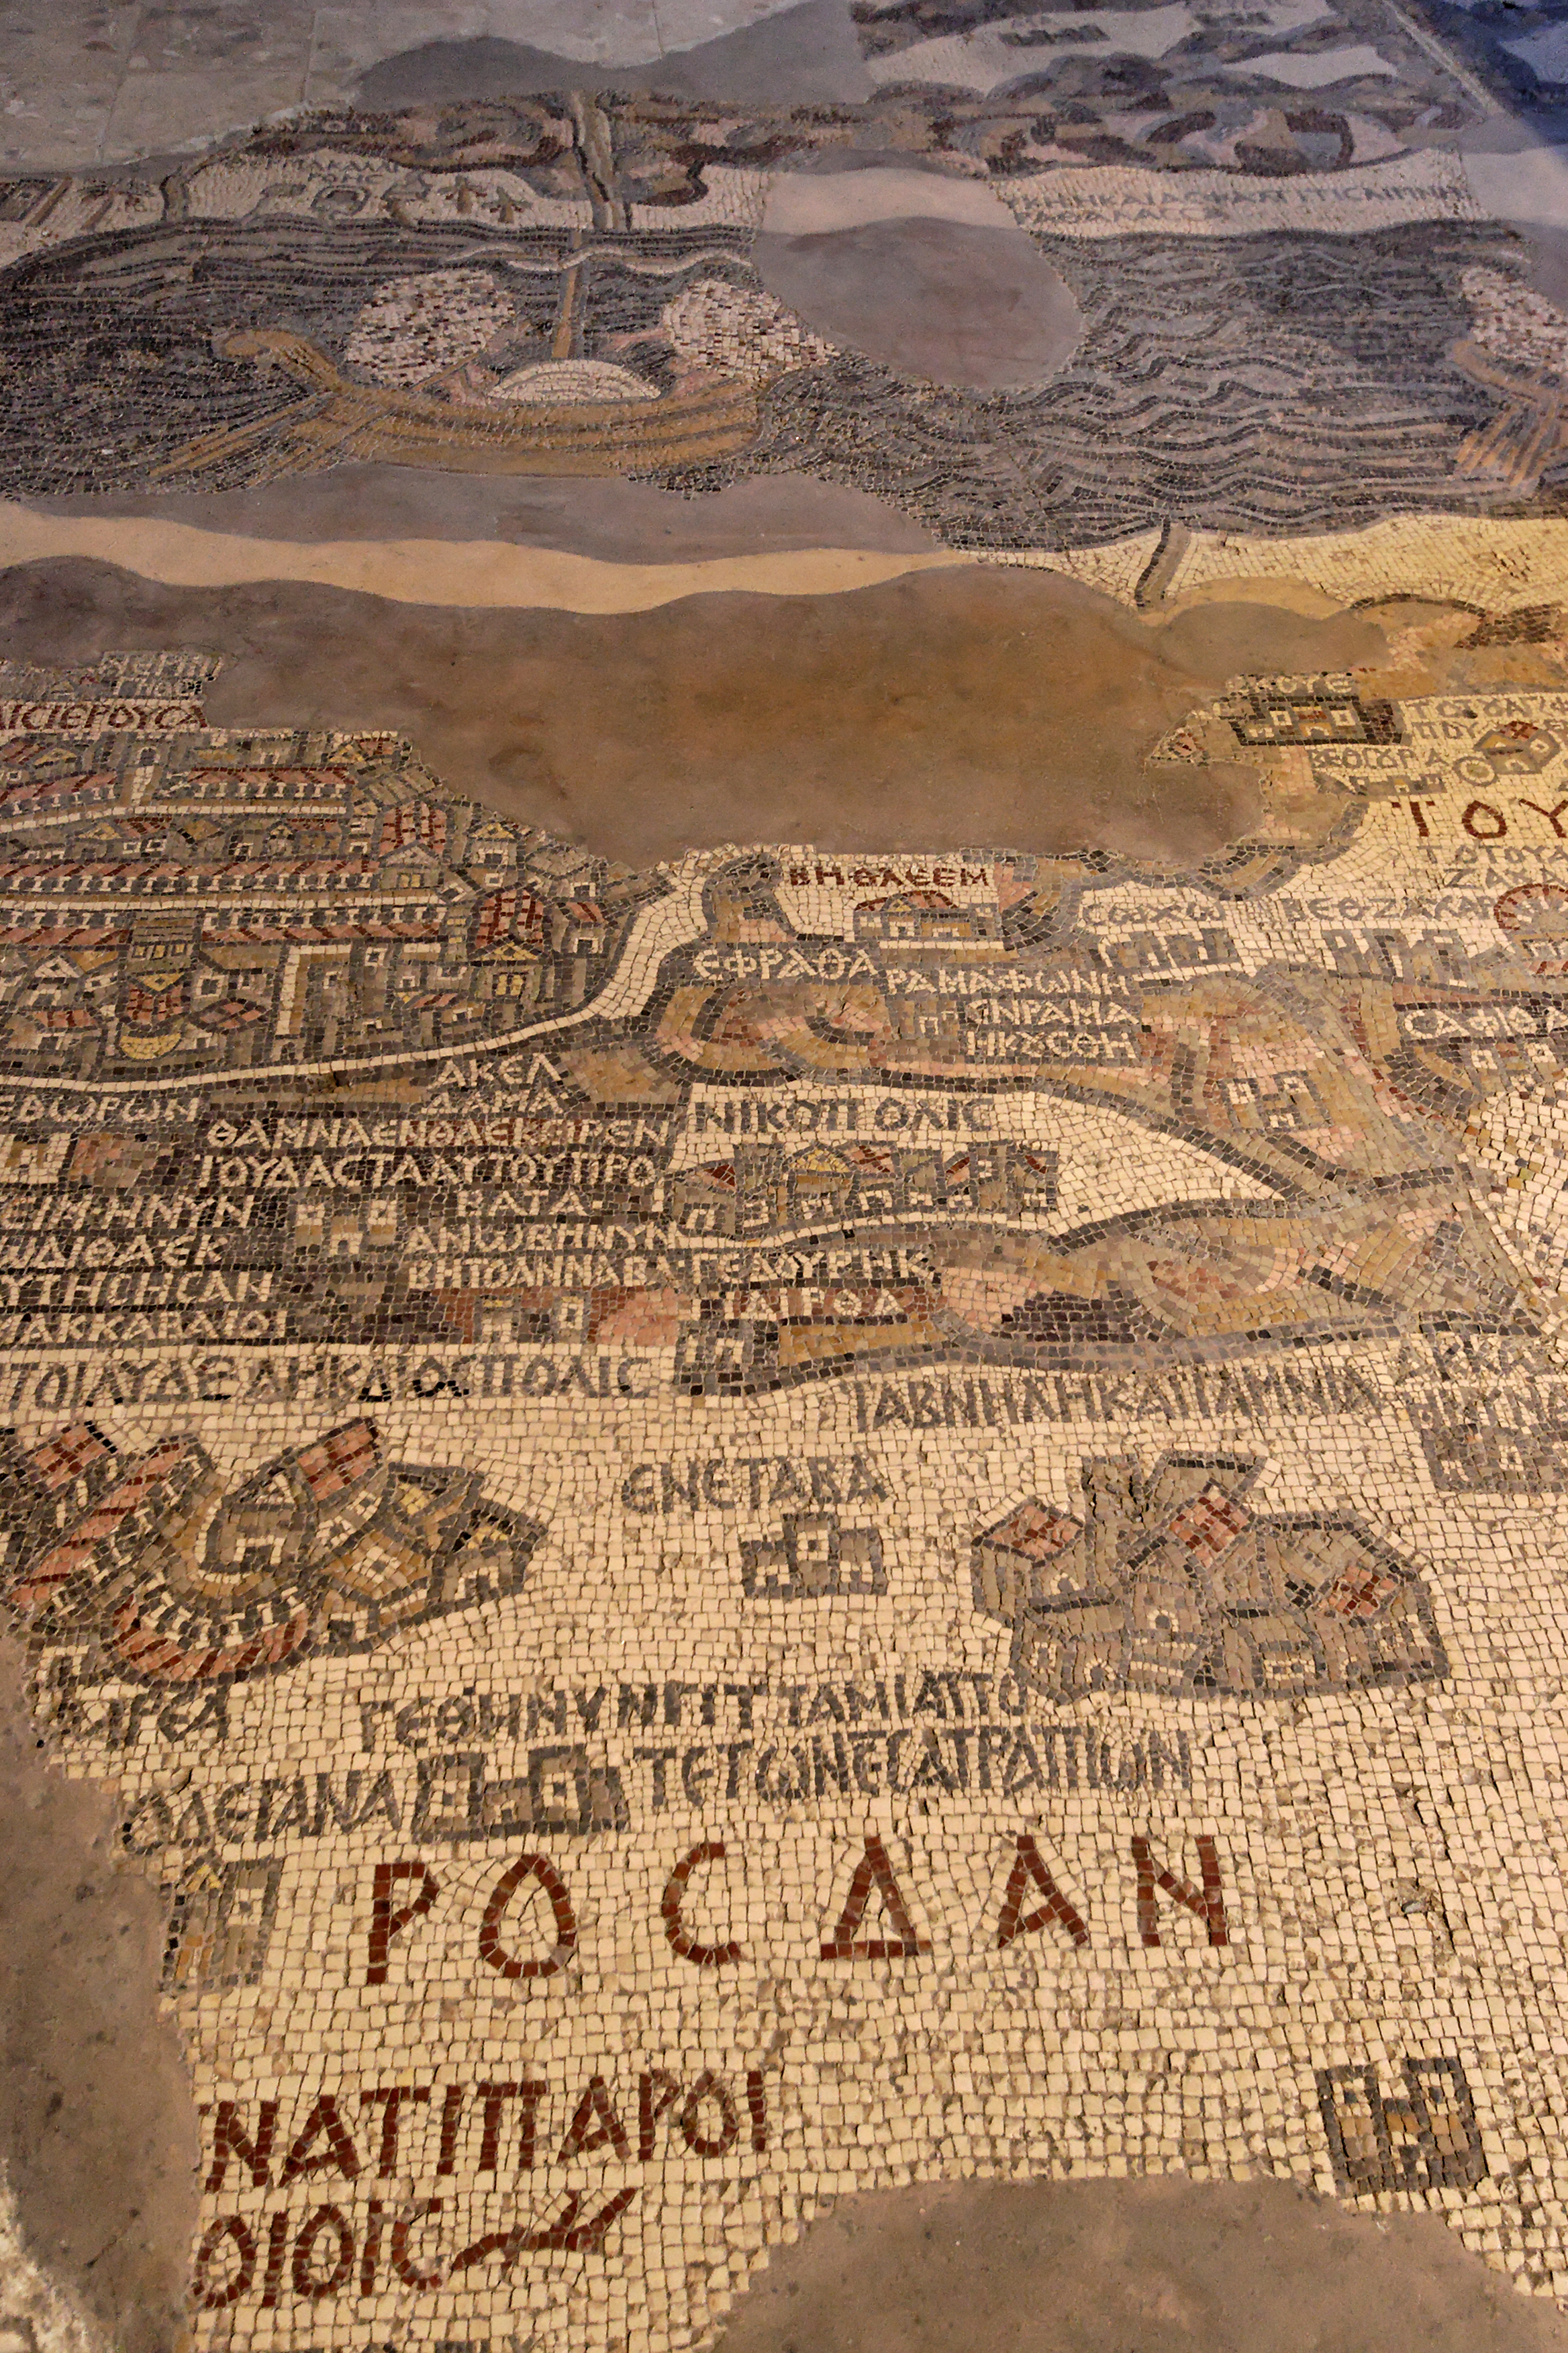 Mosaic map, Madaba Jordan.jpg - Mosaic map